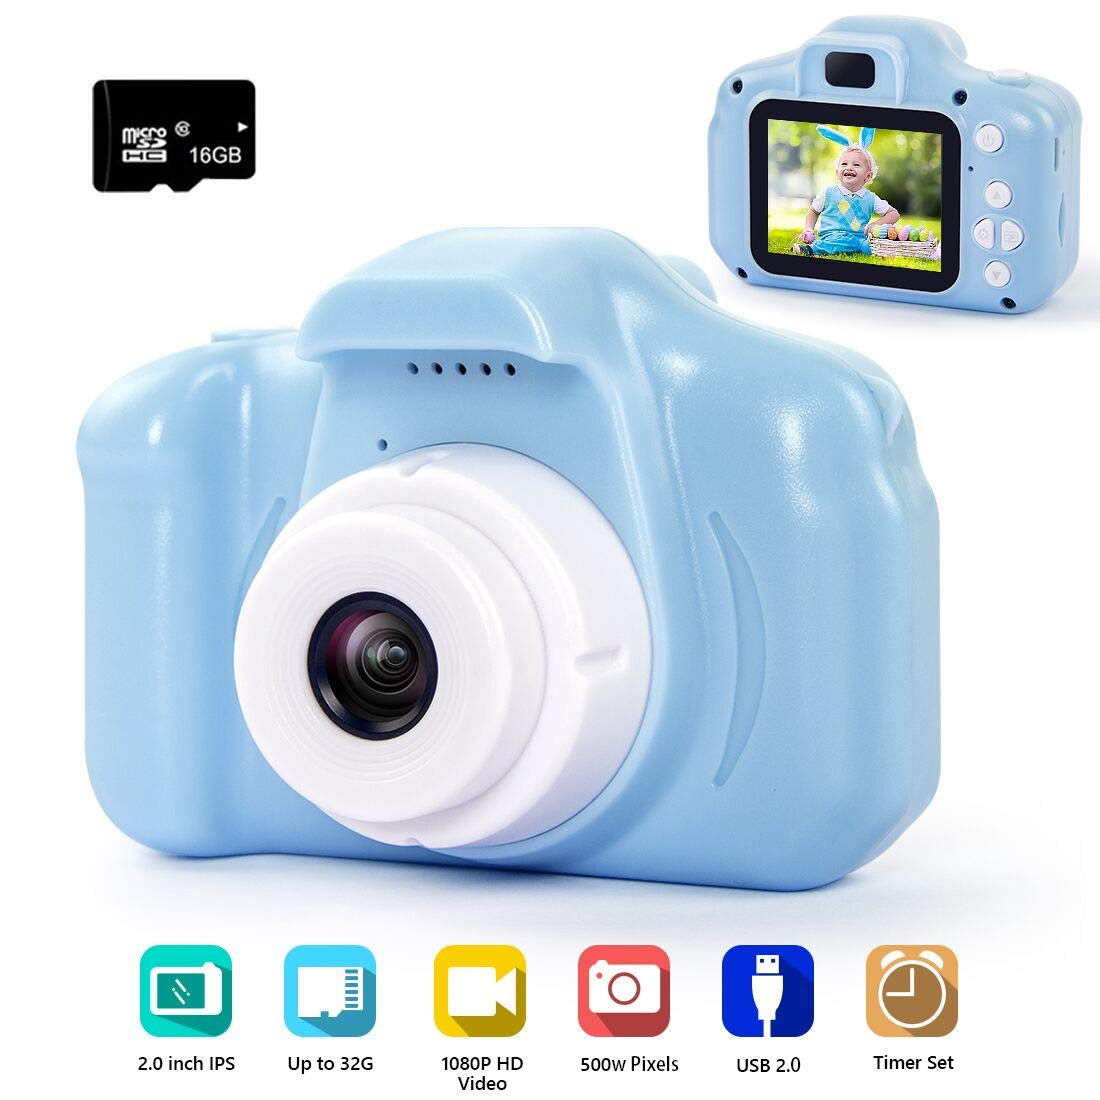 hyleton Digital Camera for Kids, 1080P 5MP HD Kids Digital Video Camera with 2 inch IPS Screen and 16GB SD Card (Light Blue) by hyleton (Image #1)